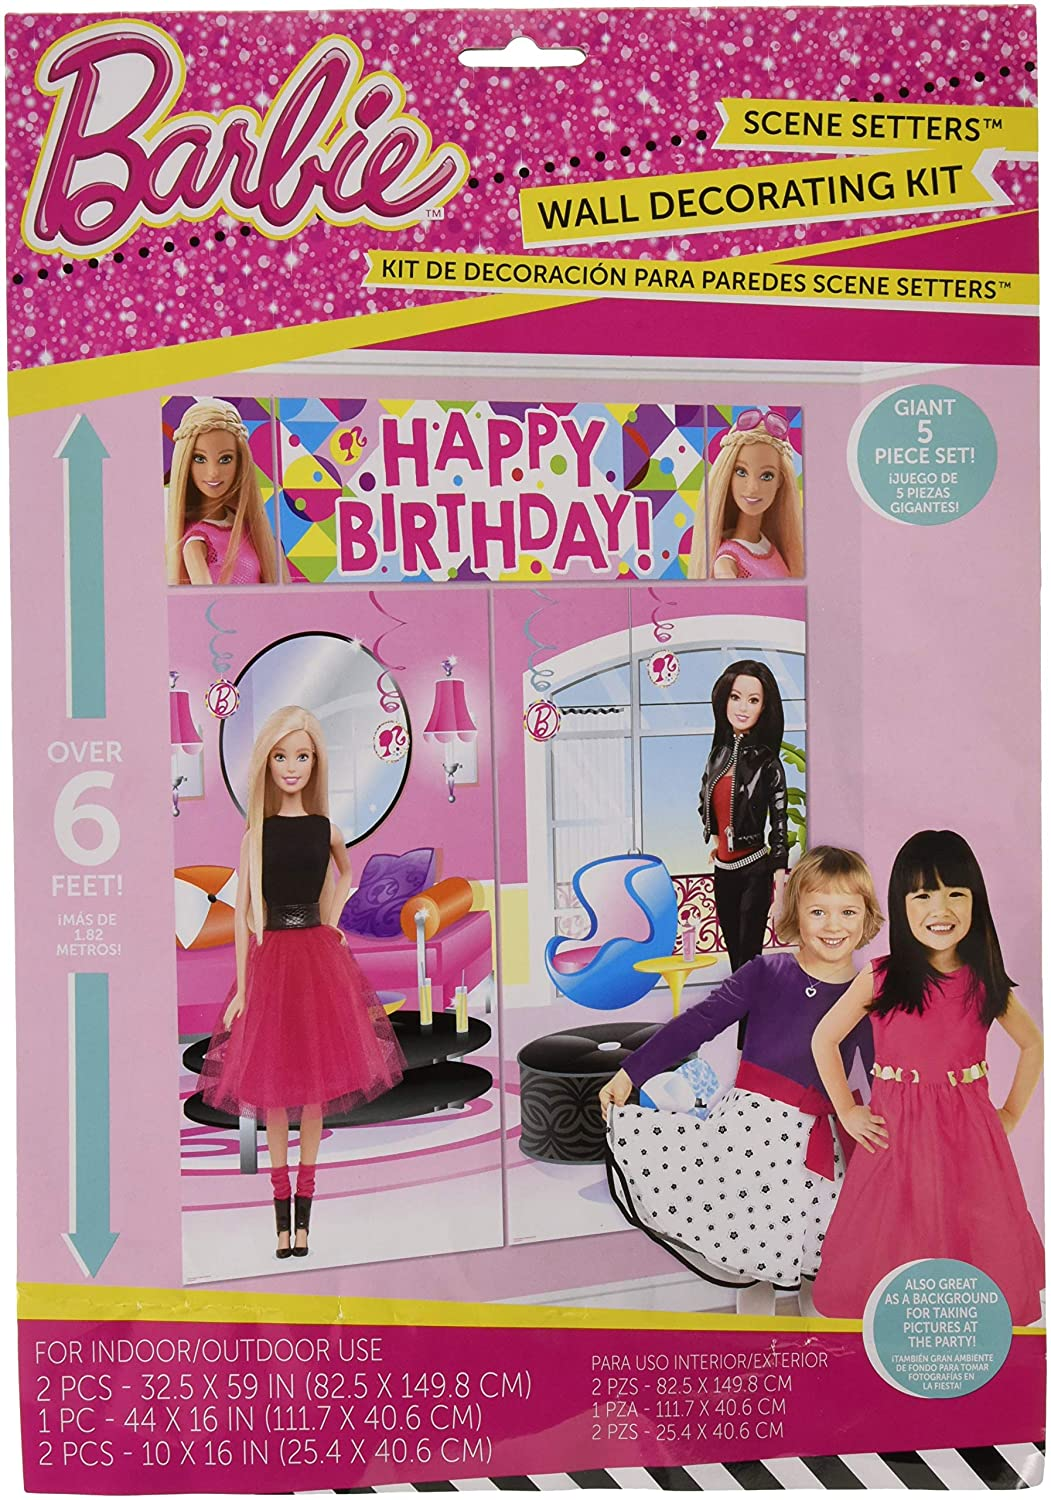 amscan Scene Setters Wall Decorating Kit | Barbie Sparkle Collection | Birthday